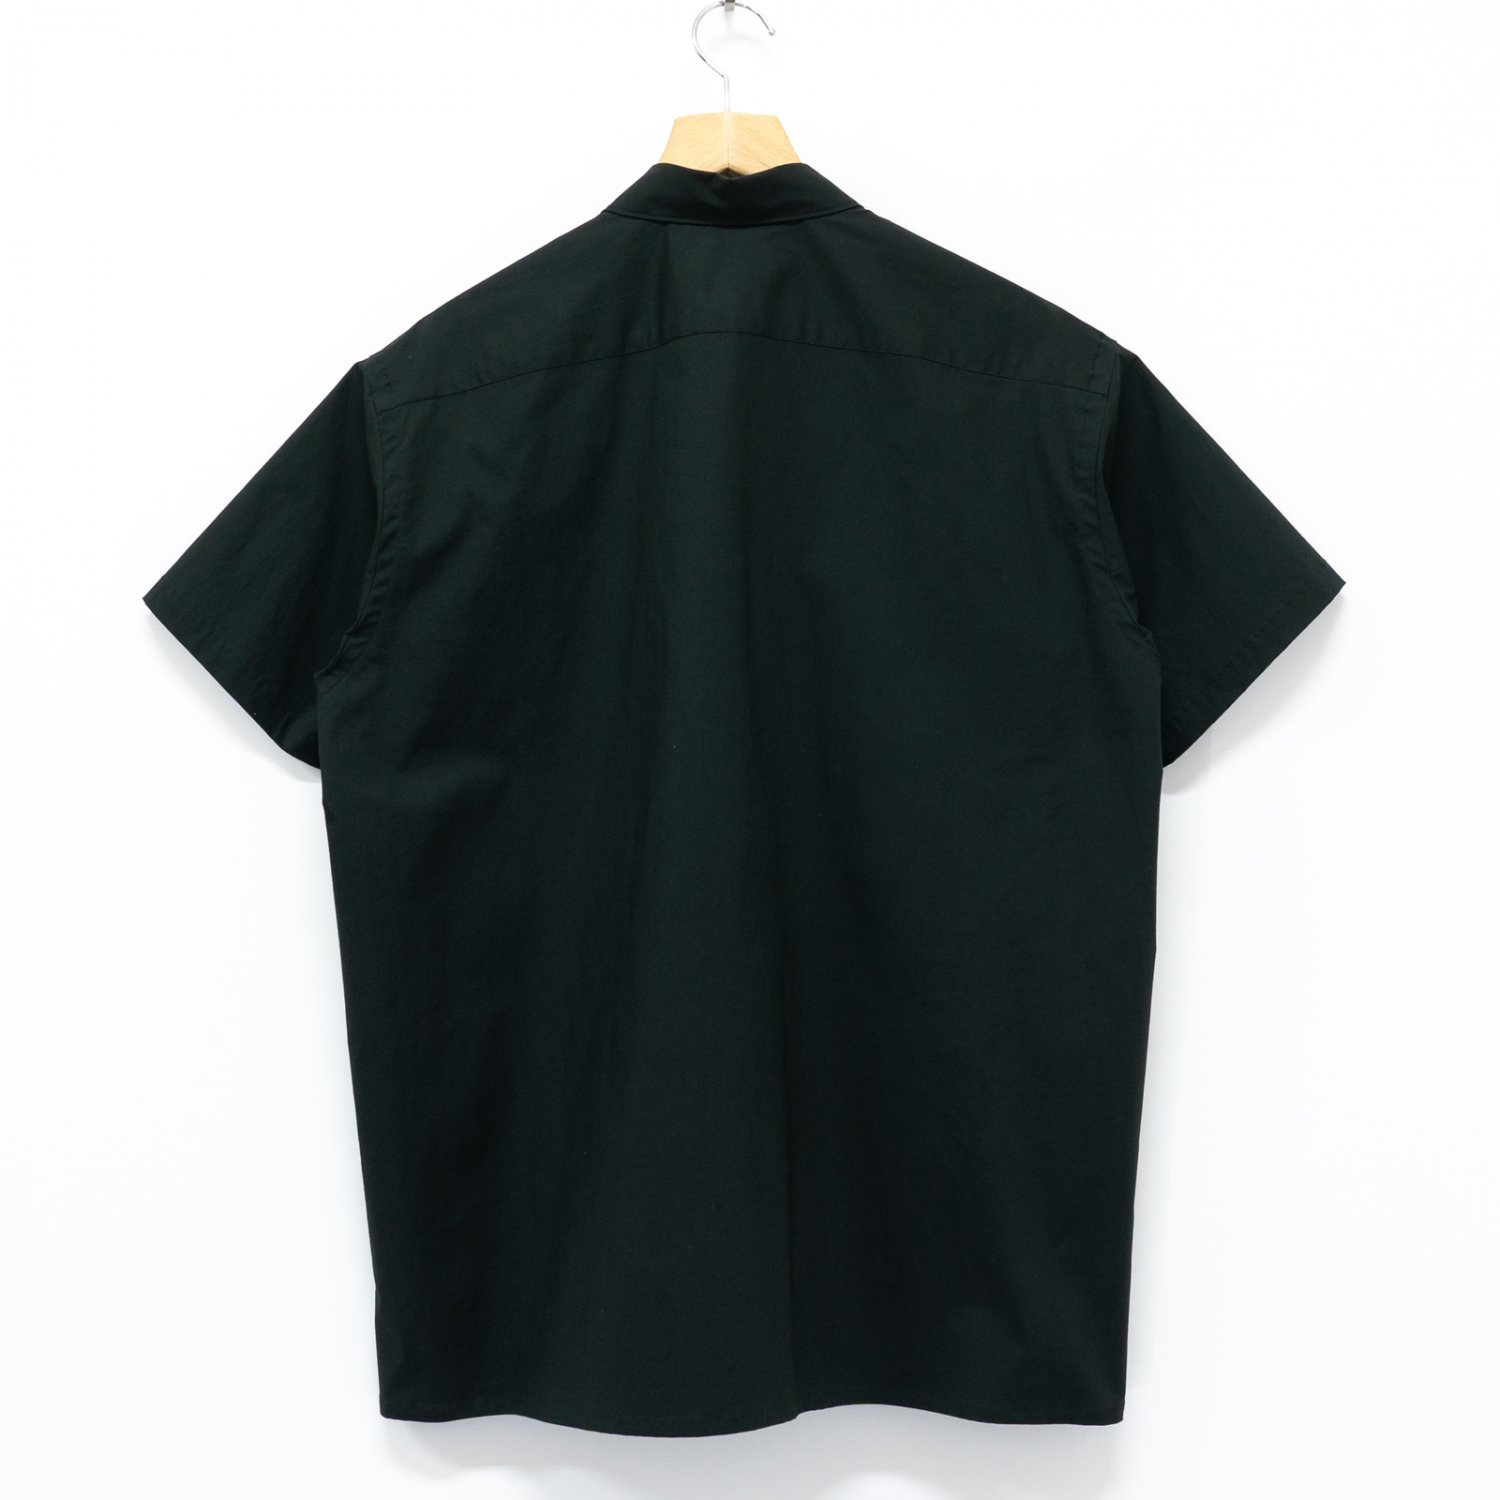 Graphpaper * Stretch Typewriter S/S Box Shirt * Black